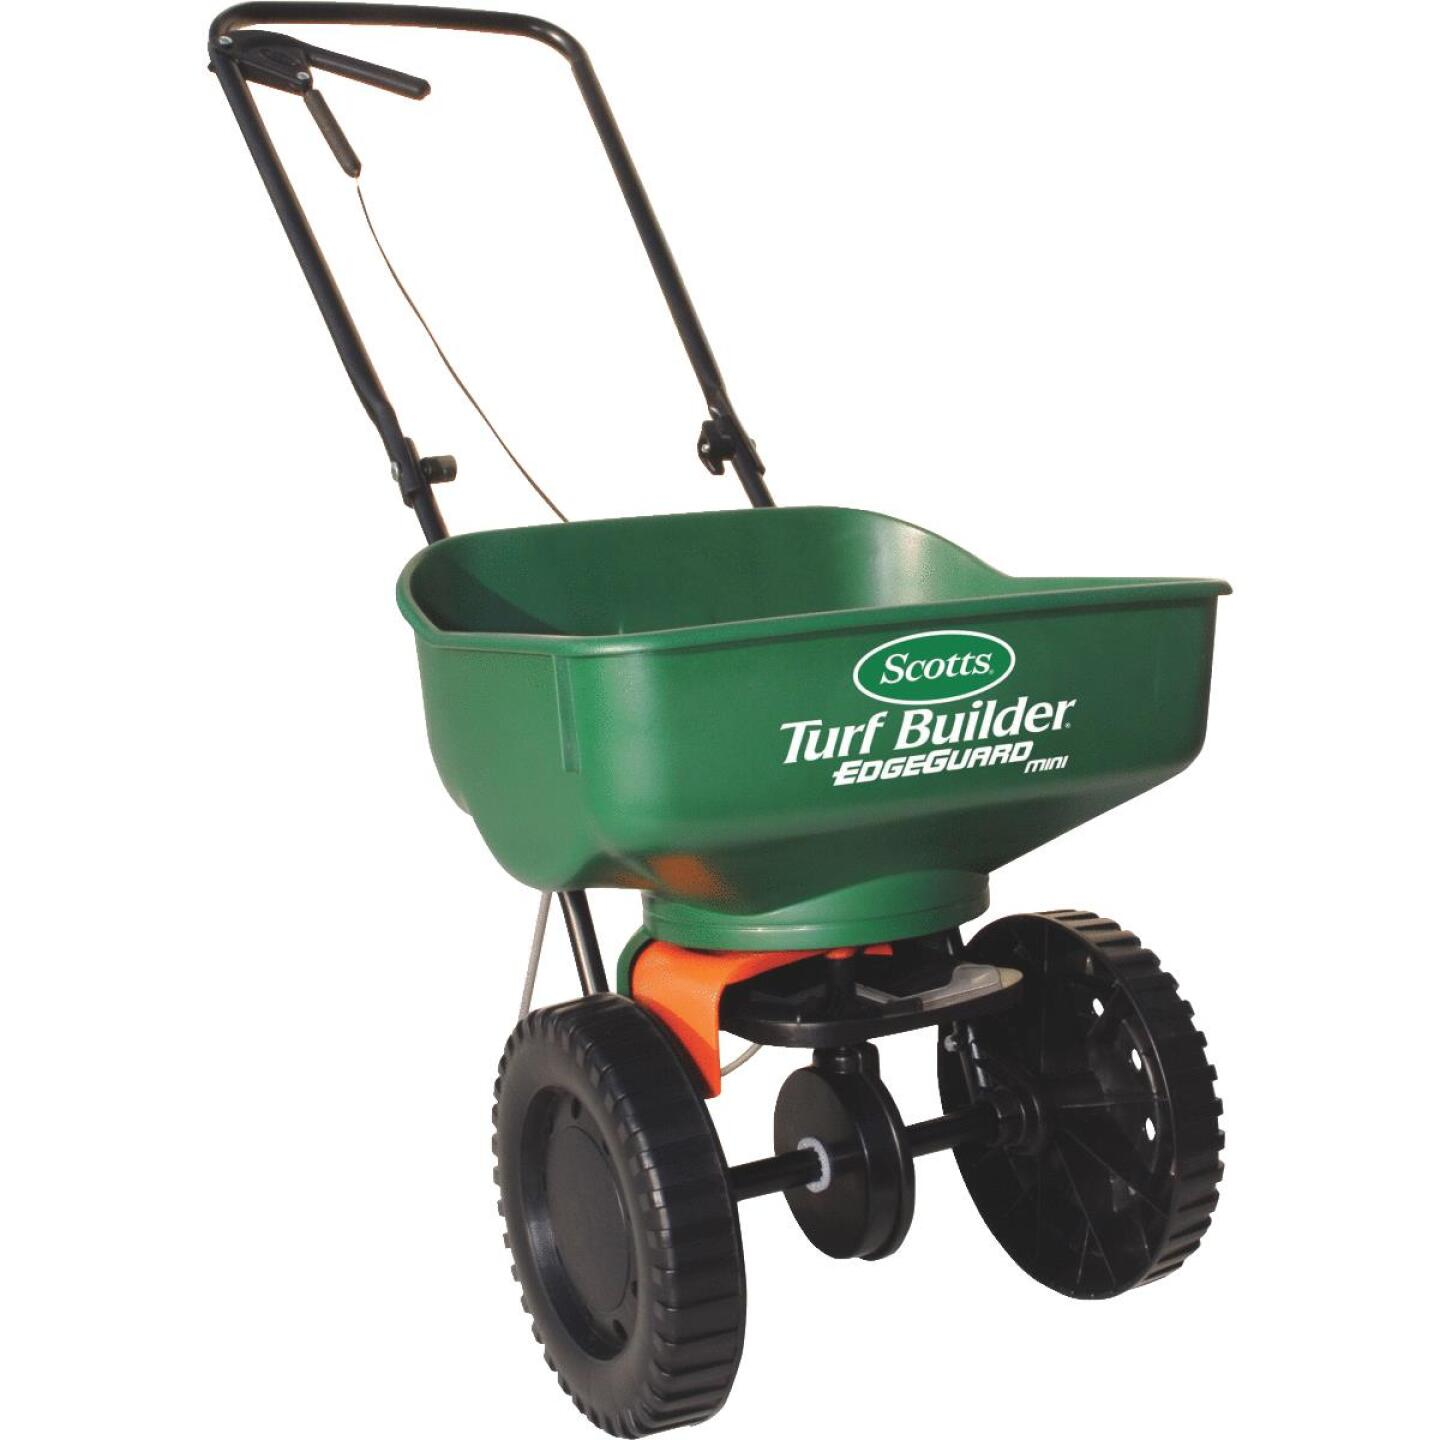 Scotts Turf Builder EdgeGuard Mini Broadcast Fertilizer Spreader Image 1